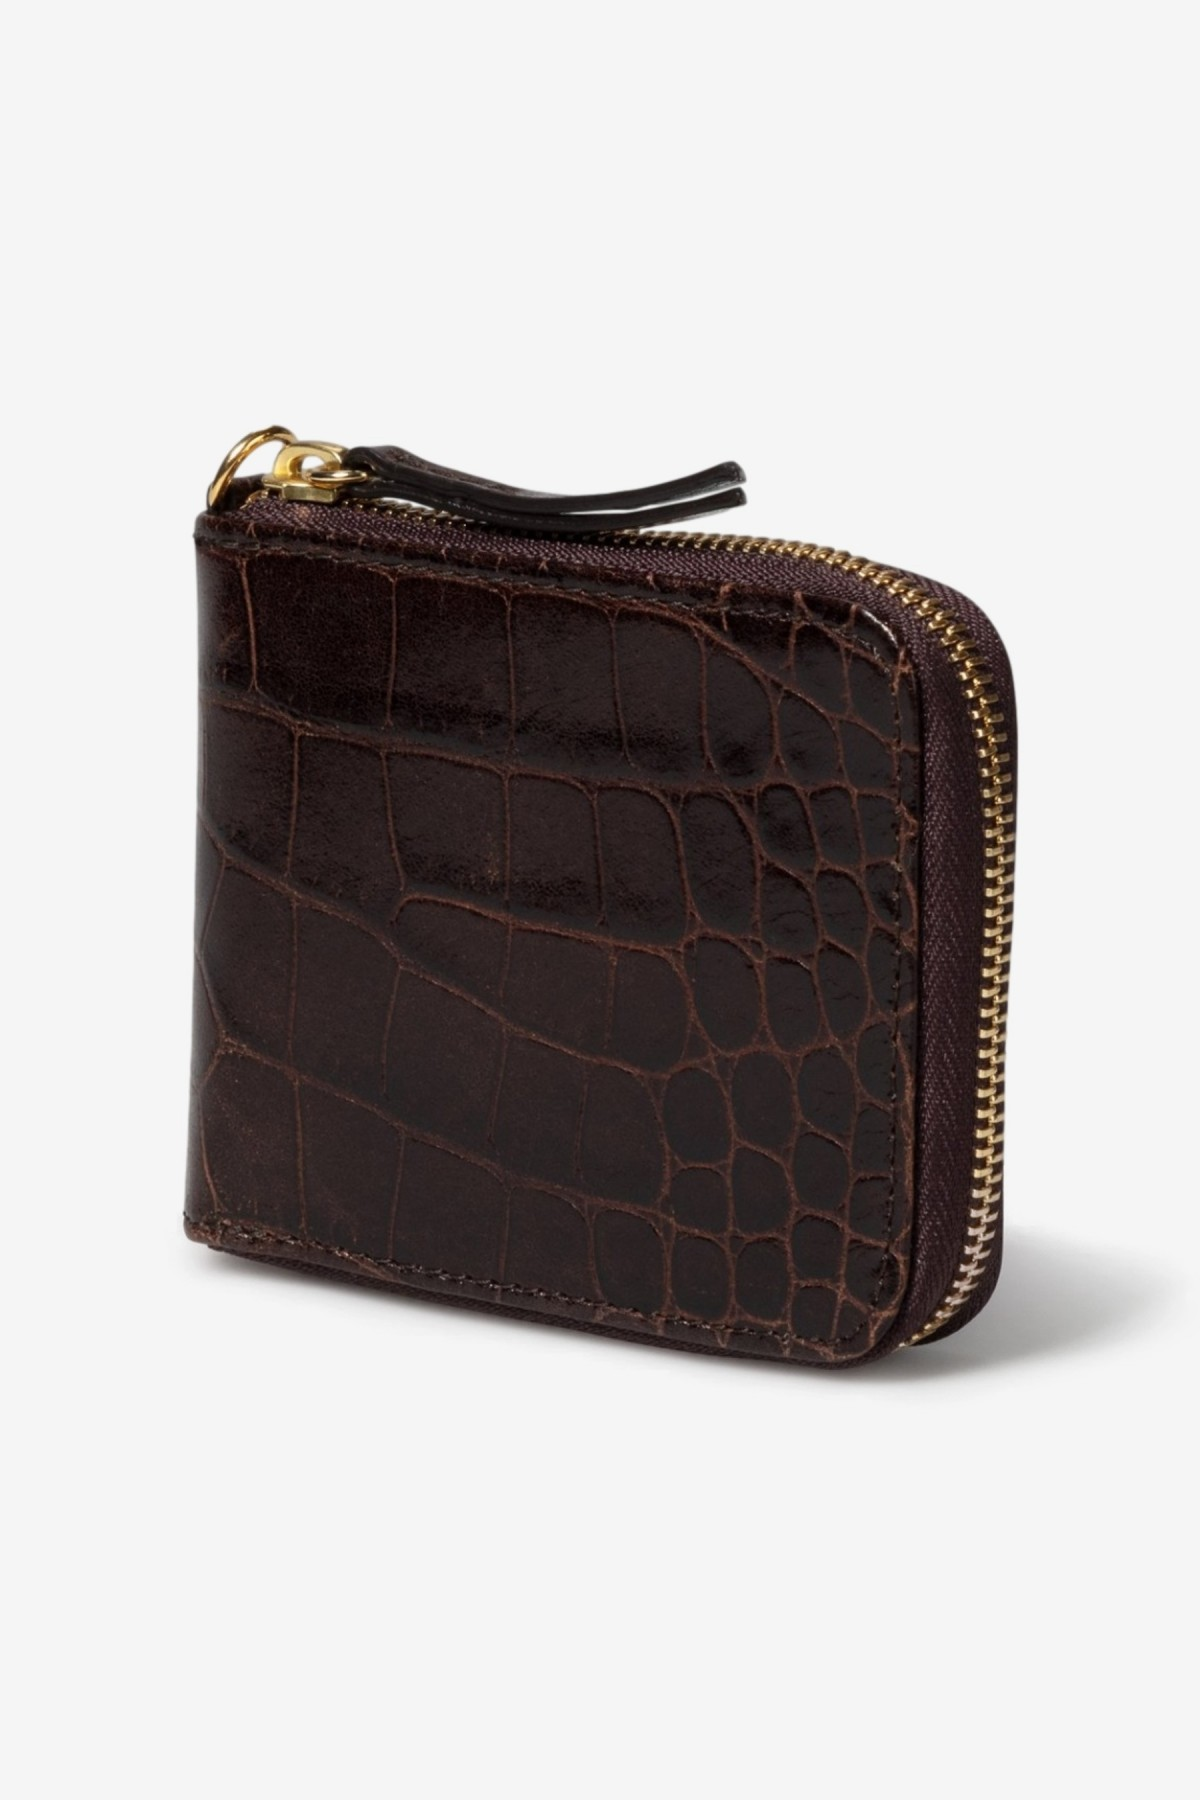 Aries Arise Leather Wallet in Brown